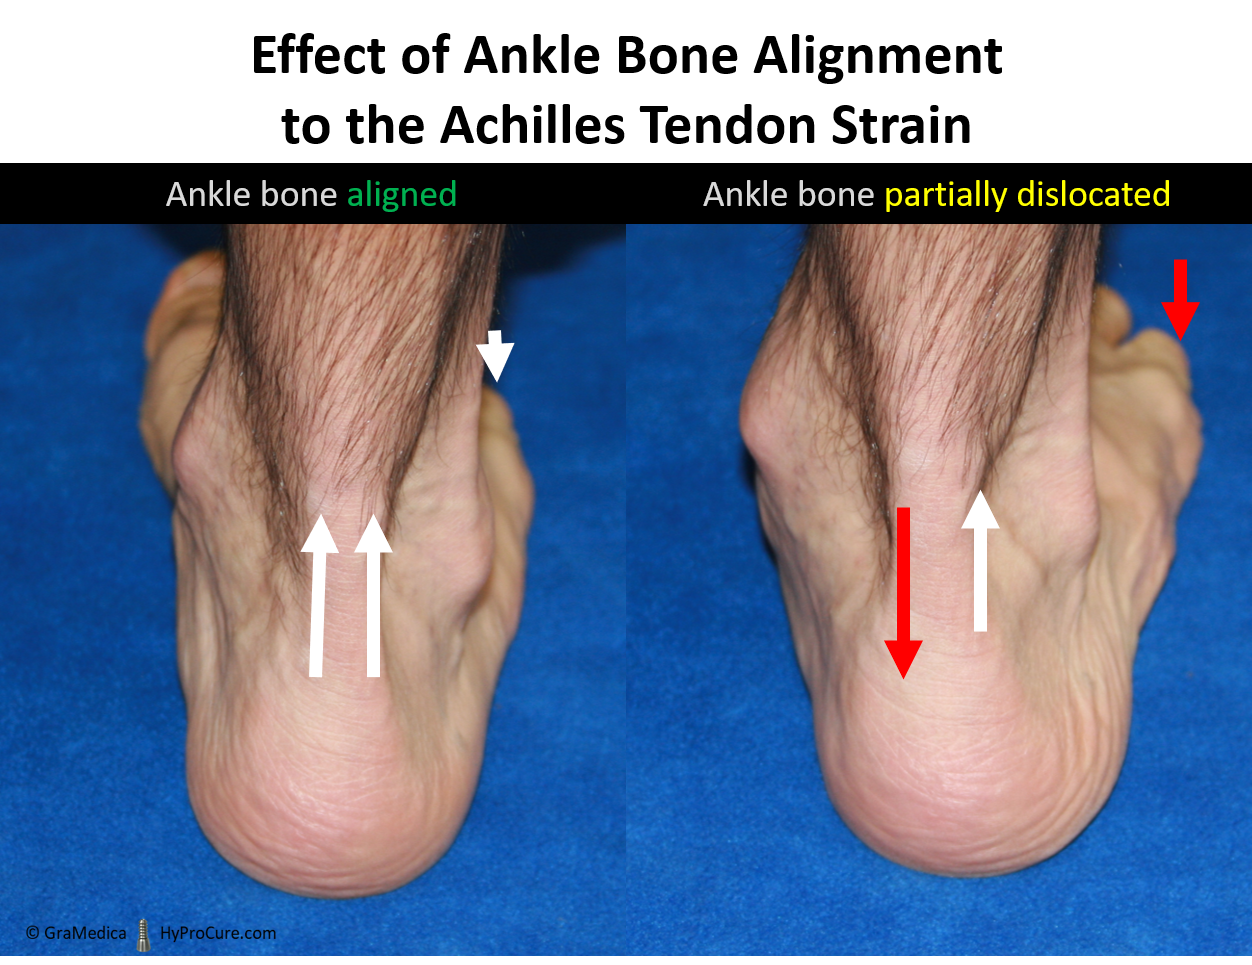 Effect of ankle bone alignment to the Achilles tendon strain